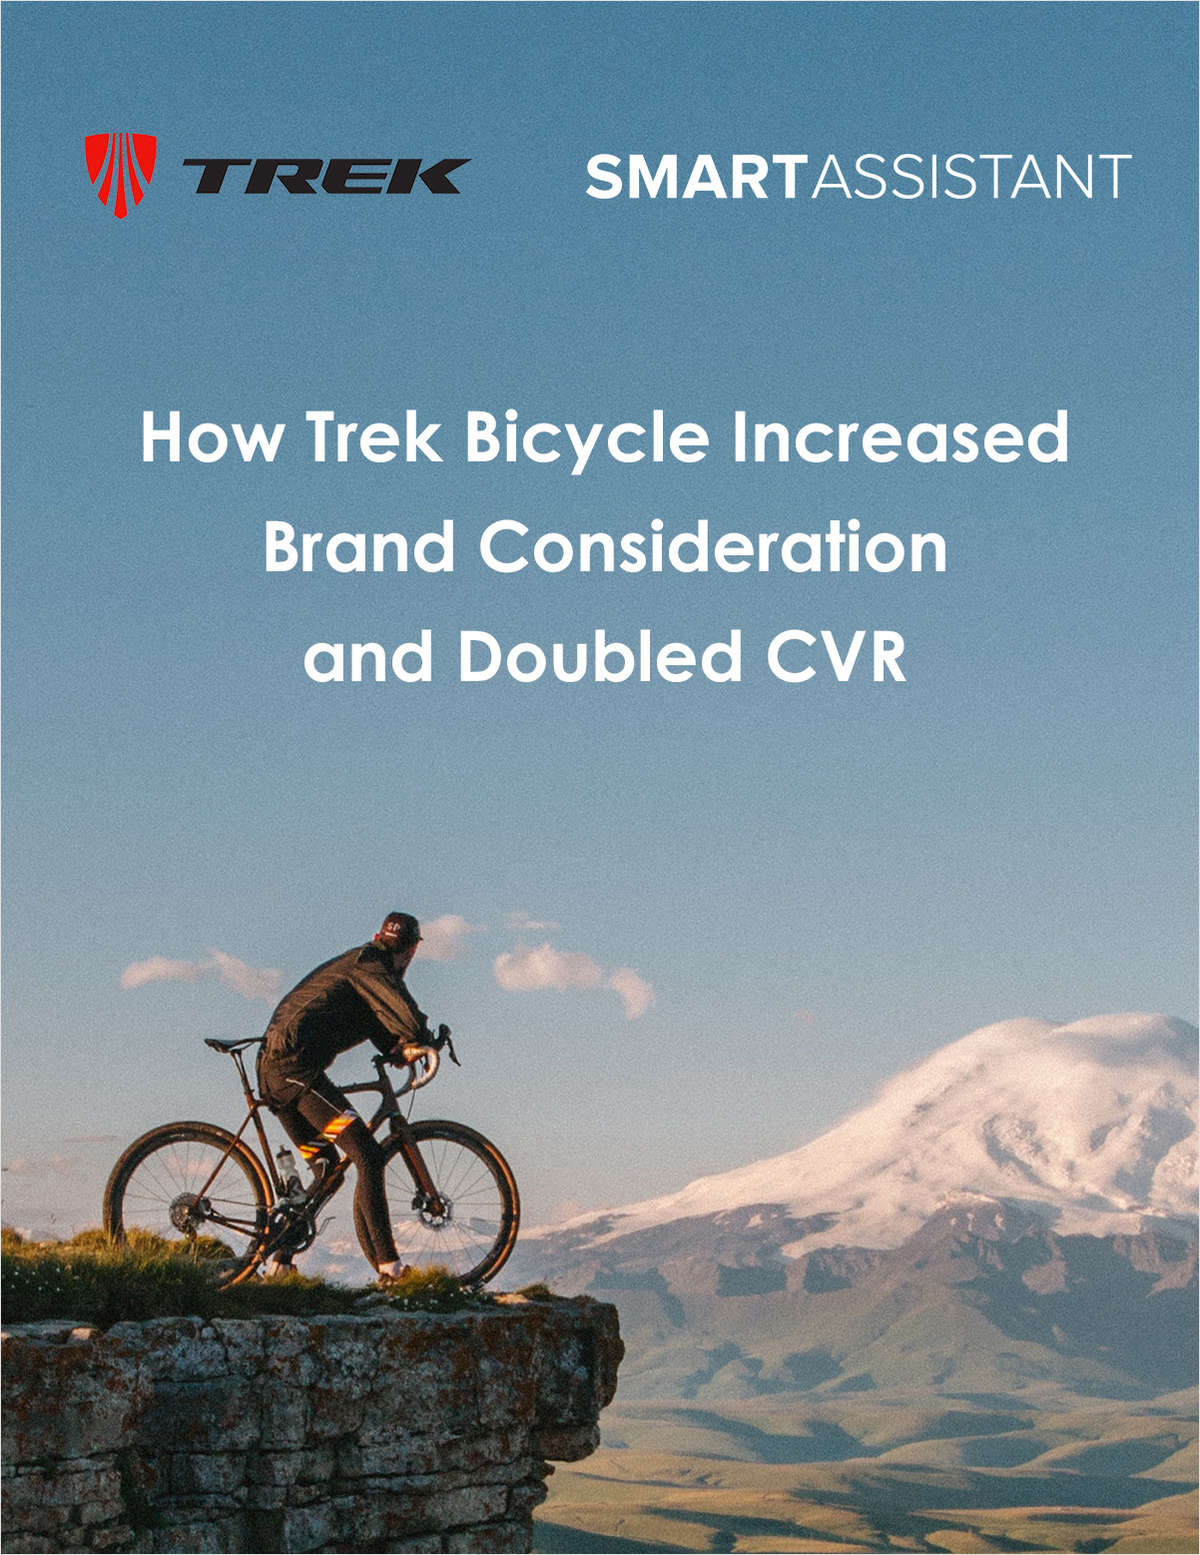 How Trek Bicycle Increased Brand Consideration and Doubled Conversions